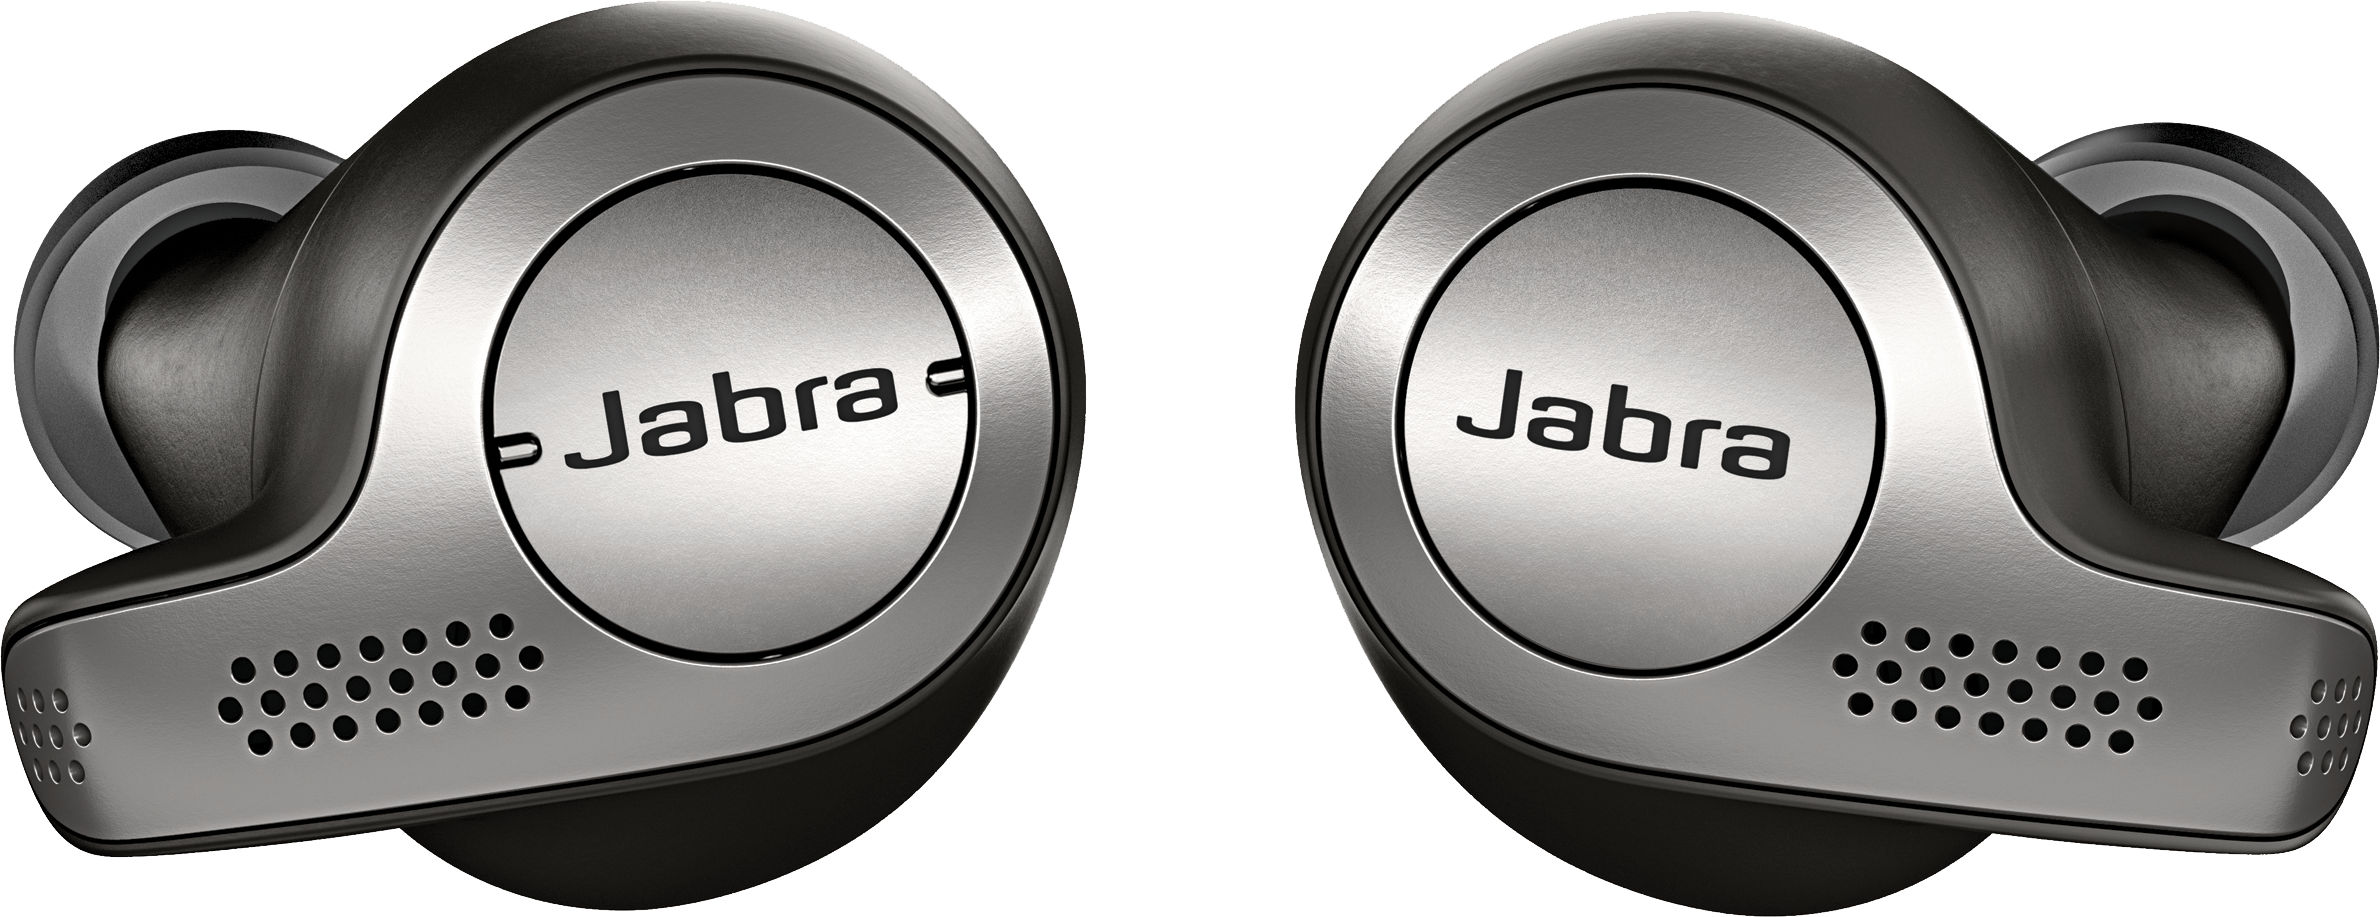 3 reasons to love Jabra Elite 65t Wireless Earbuds